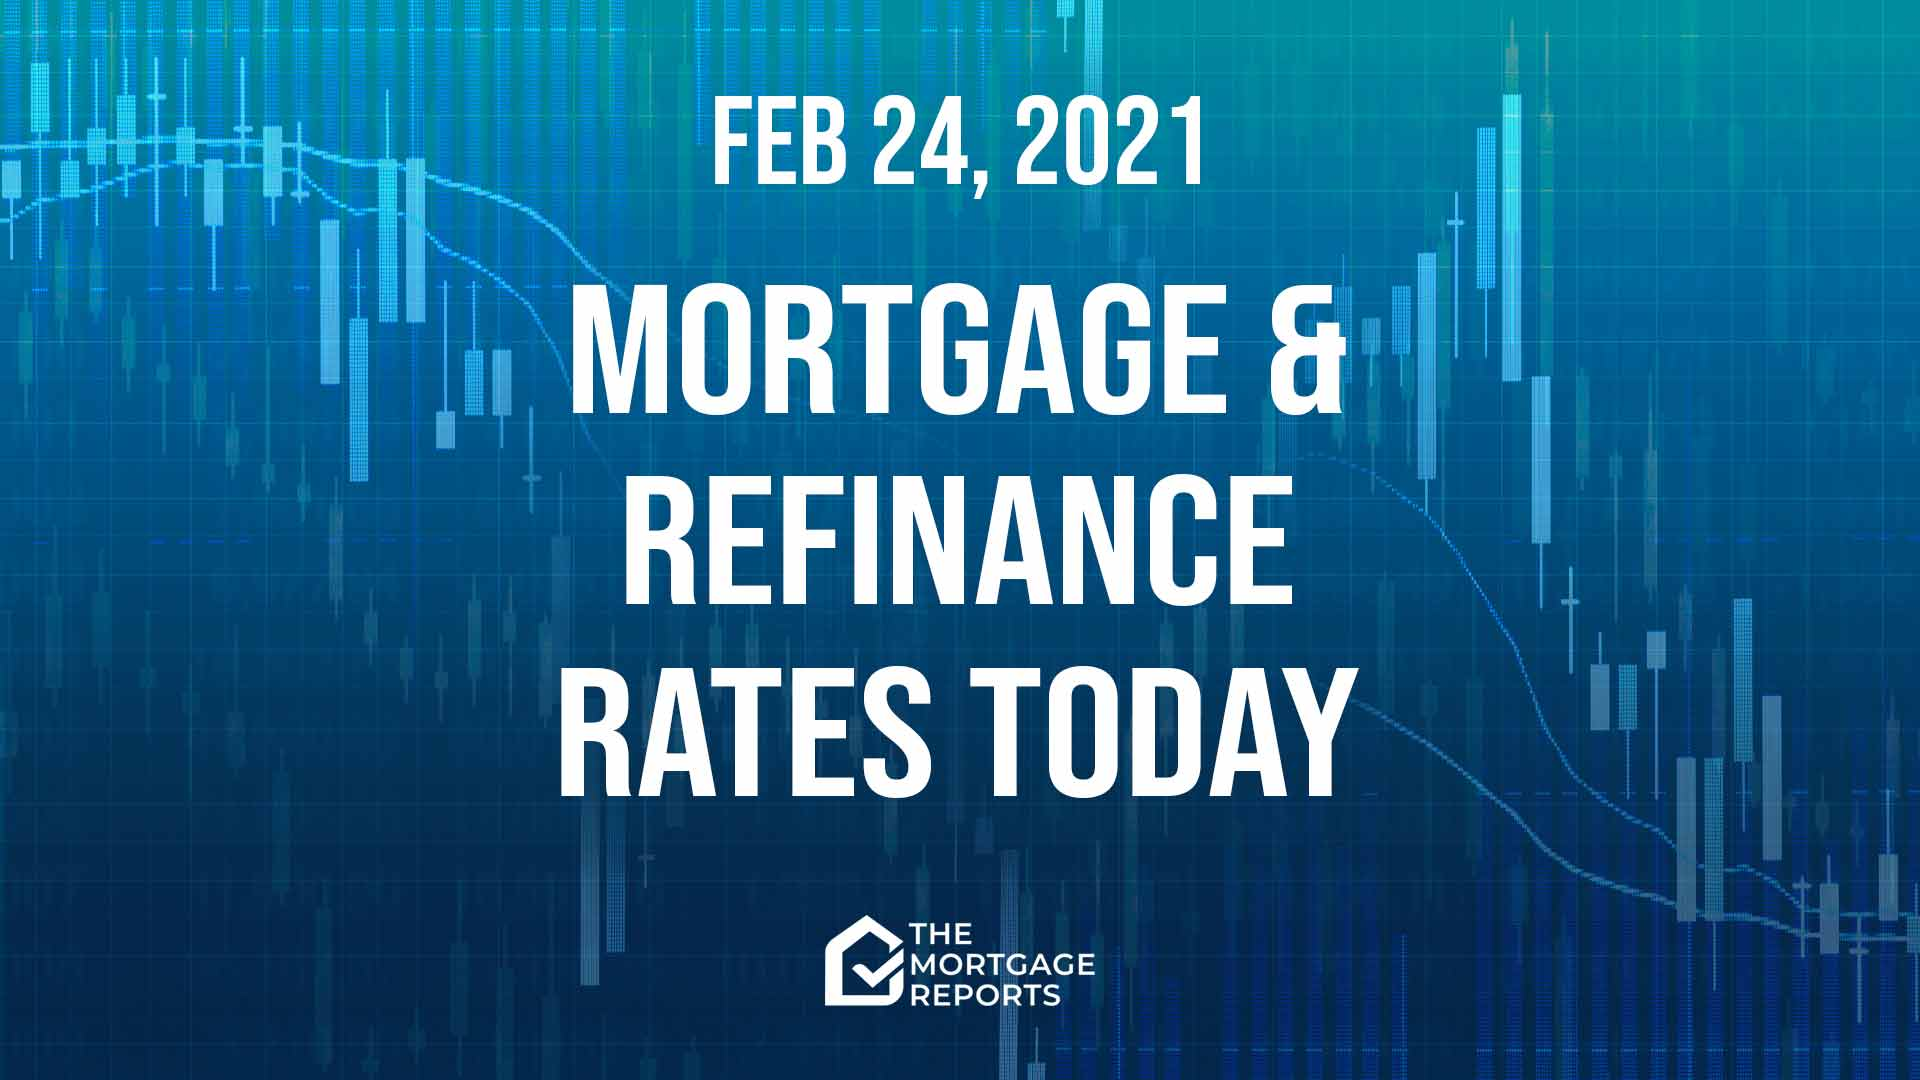 Mortgage and refinance rates today, February 24, 2021